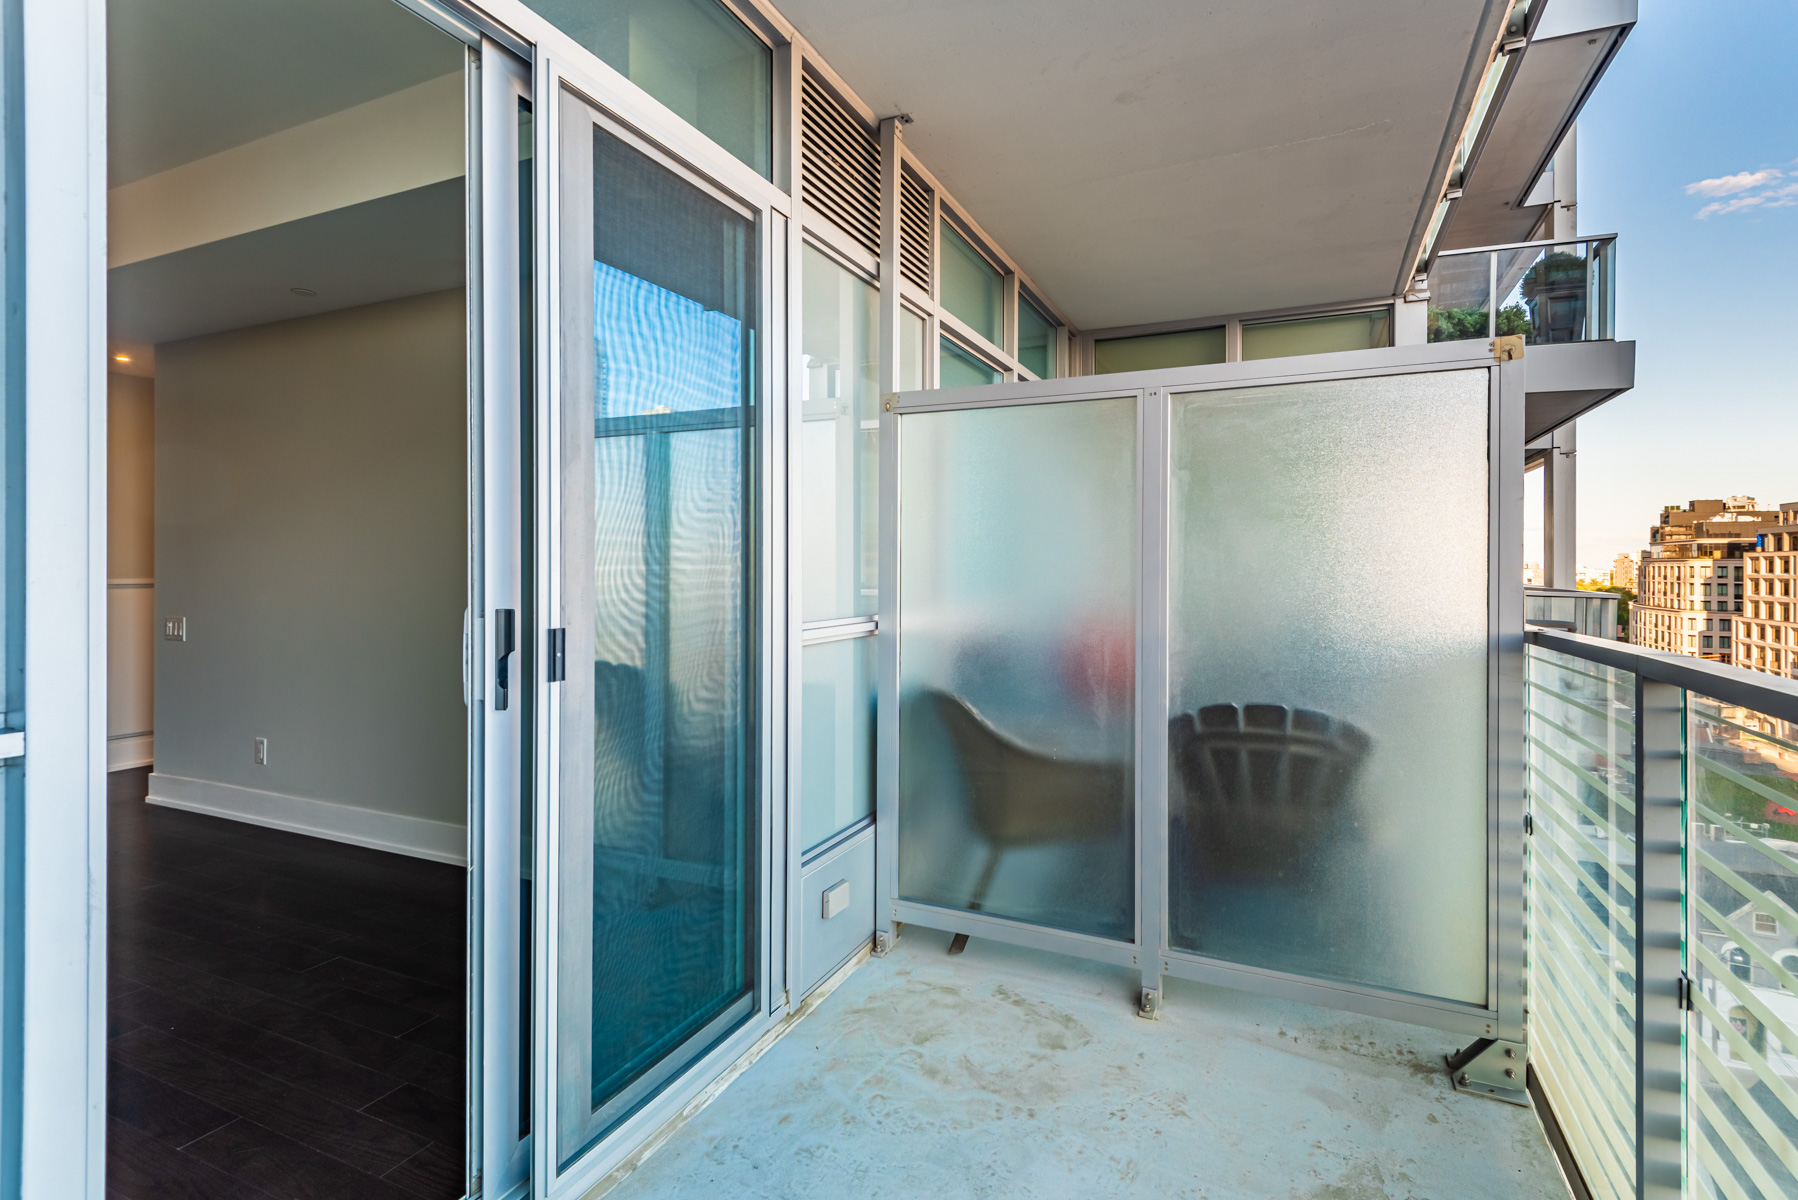 Balcony with glazed dividers.